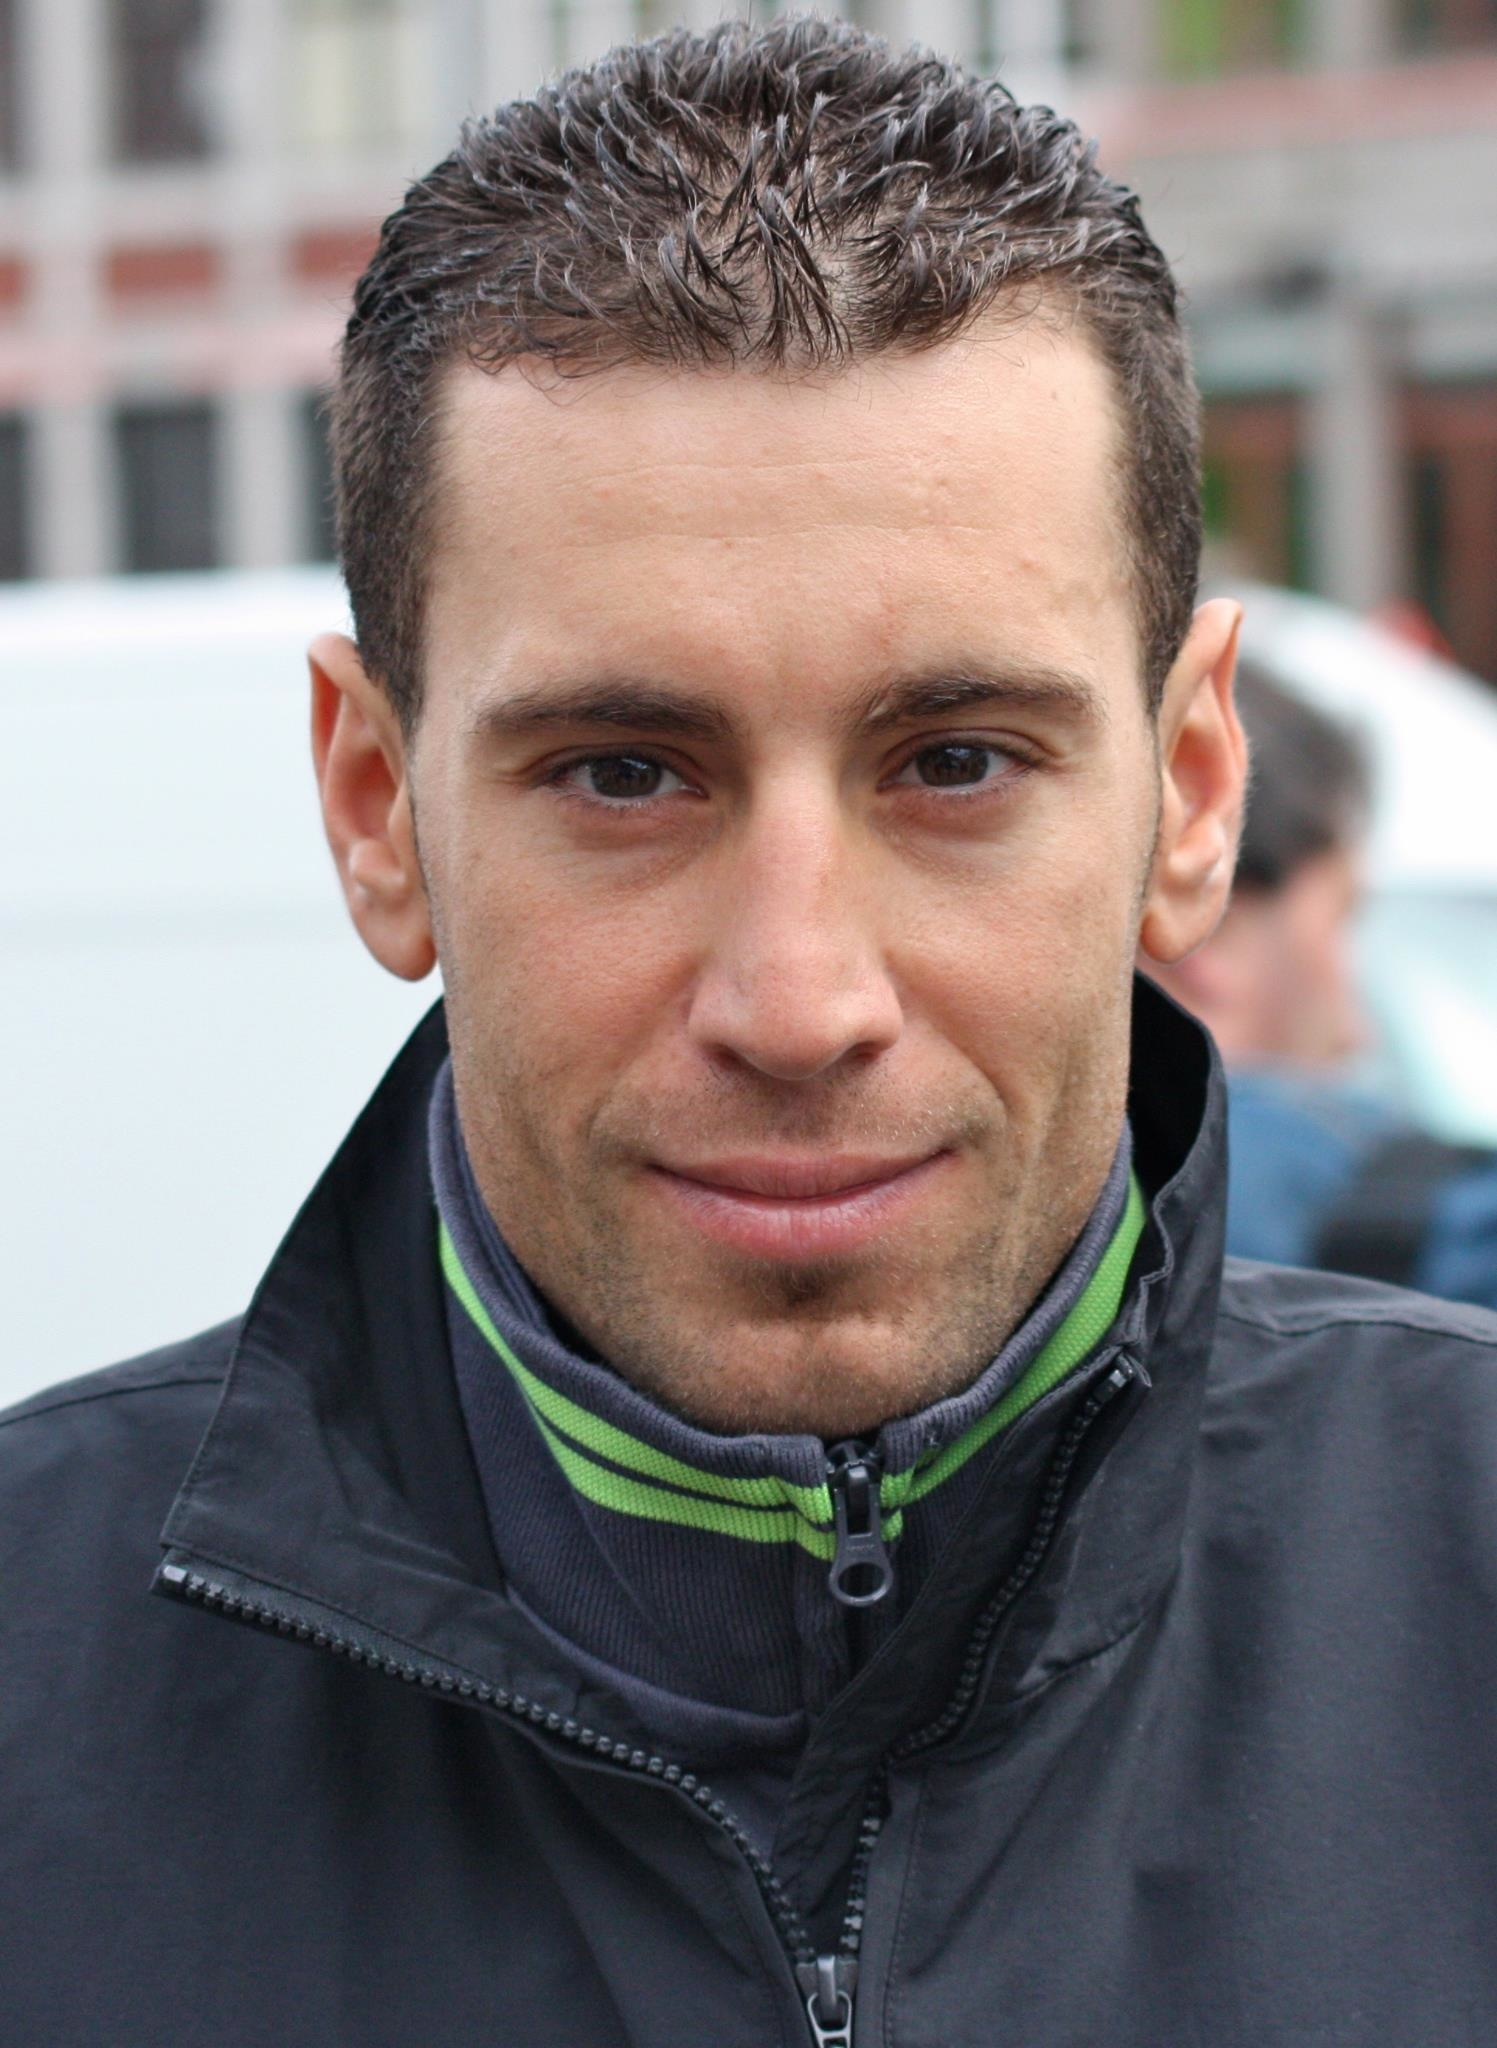 The 32-year old son of father Salvatore Nibali and mother Giovanna Nibali, 169 cm tall Vincenzo Nibali in 2017 photo